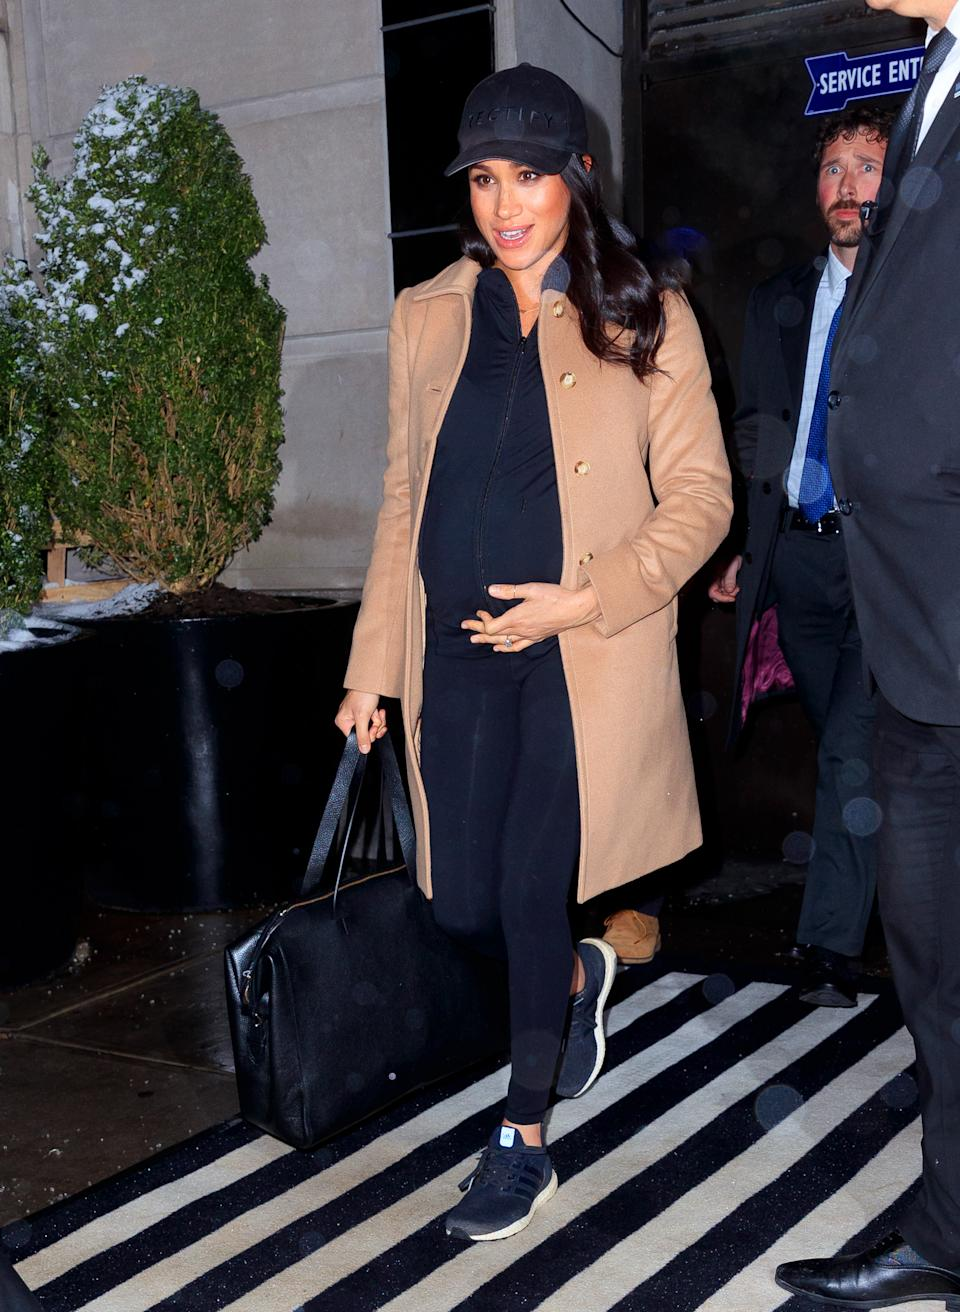 Meghan Markle opted for ultimate comfort in a pair of Adidas trainers as she made her way to her baby shower in New York in  February 2019.  (Getty Images)